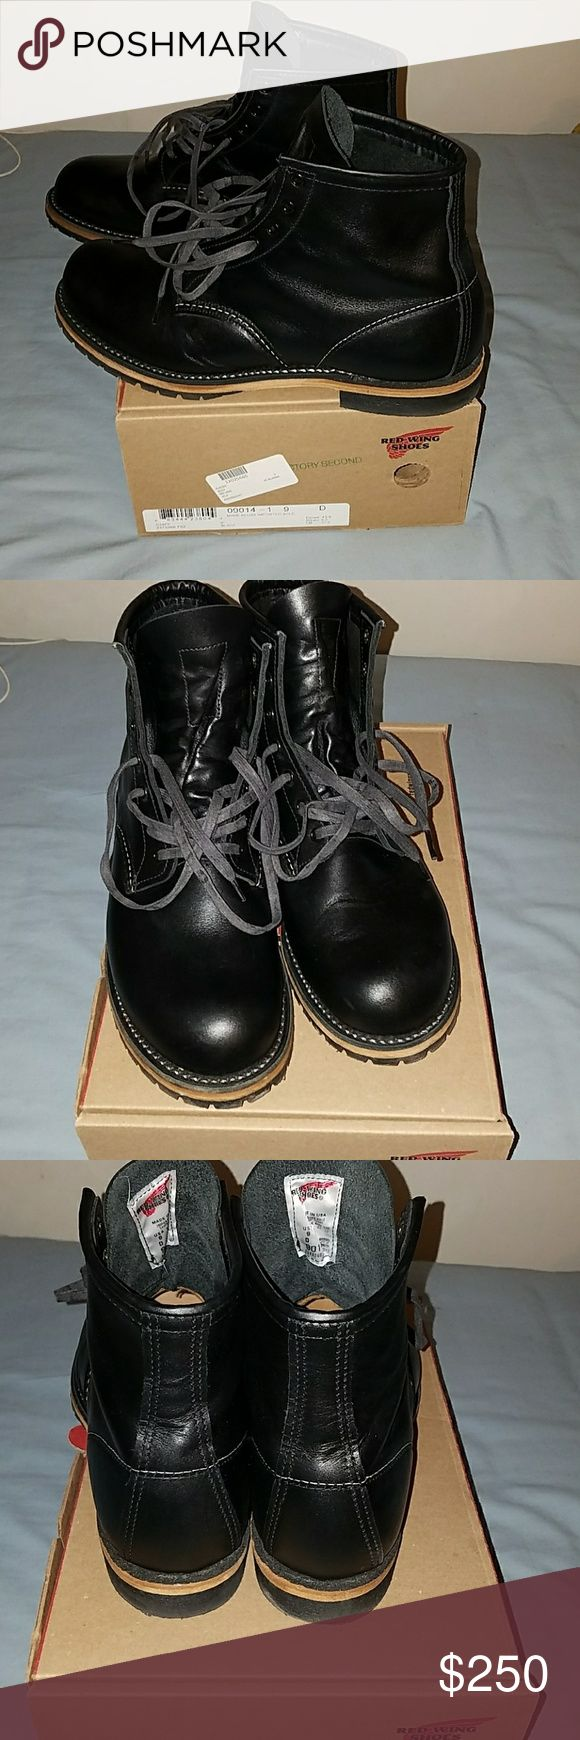 Red Wing Beckman Round Worn 1 time, please see pictures for very slight wrinkles in leather. These are factory seconds but that DOES not change the quality at all. These are not even broken in and are like brand new! They retail at $350 plus tax. Red Wing Shoes Shoes Boots